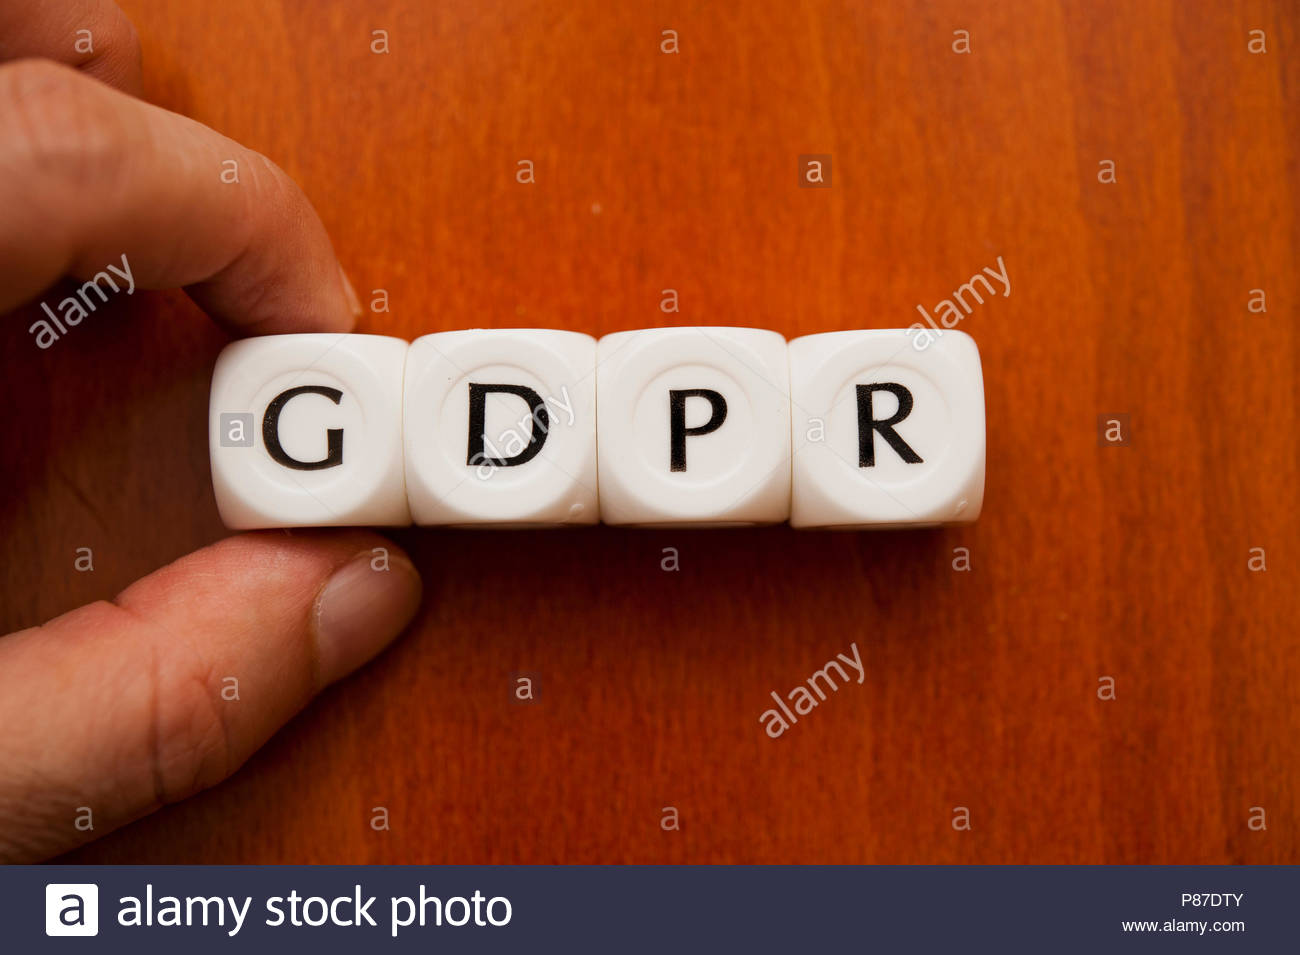 hand holding dice forming the word GDPR - General Data Protection Regulation - Stock Image